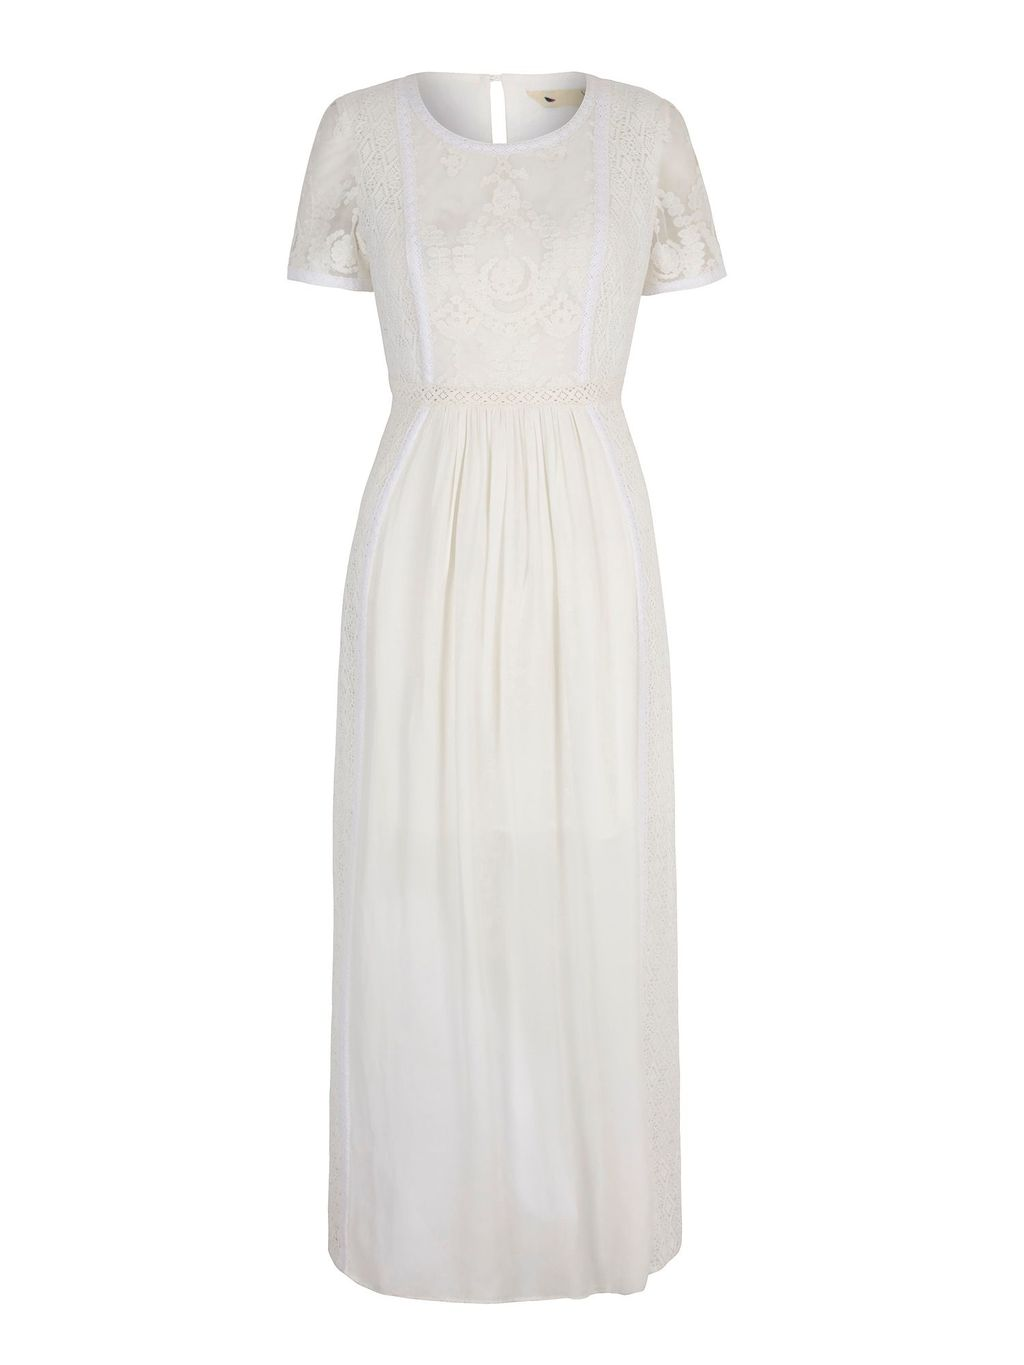 Lace Maxi Dress, Ivory - pattern: plain; style: maxi dress; predominant colour: white; occasions: evening; length: floor length; fit: body skimming; fibres: polyester/polyamide - stretch; neckline: crew; sleeve length: short sleeve; sleeve style: standard; texture group: lace; pattern type: fabric; pattern size: standard; season: s/s 2016; wardrobe: event